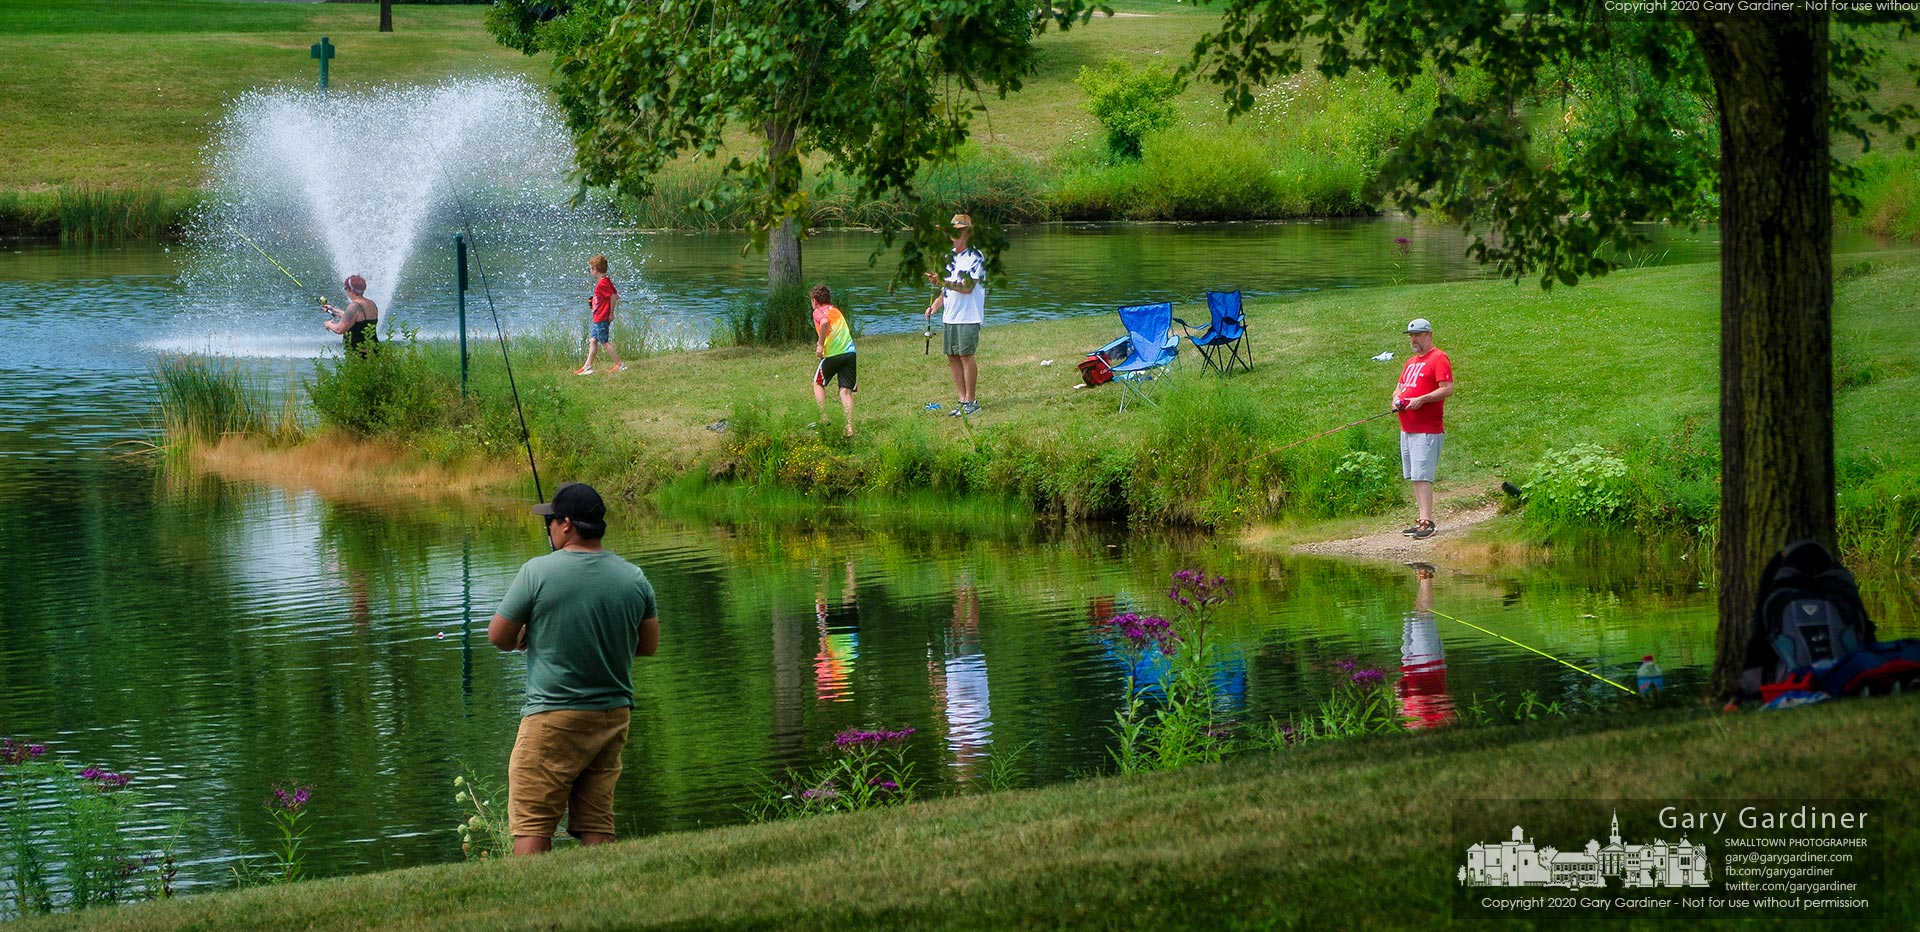 Families fish along the edge of the holding pond at Hoff Woods Park. My Final Photo for Aug. 15, 2020.